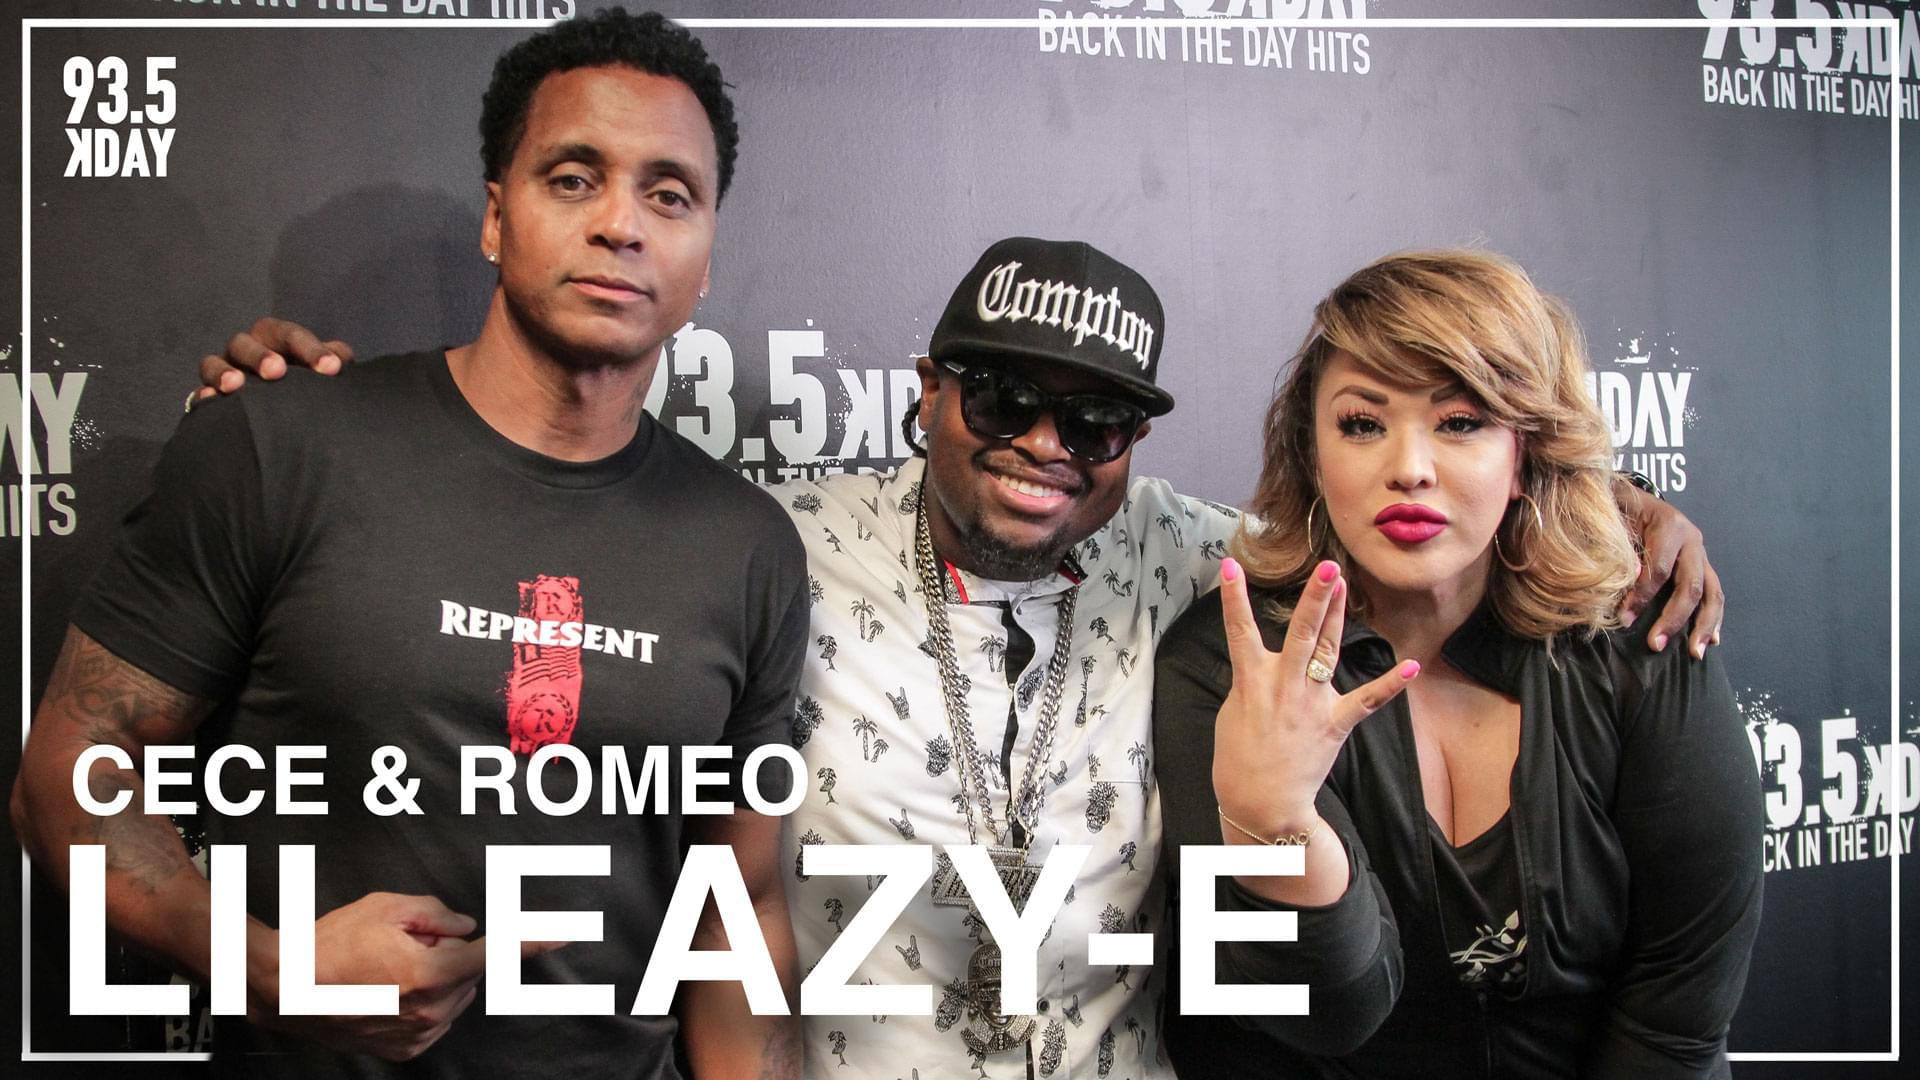 Lil Eazy-E On Pressure To Uphold Eazy E's Legacy w/ New Tombstone Unveiling + Growing Up Hip Hop